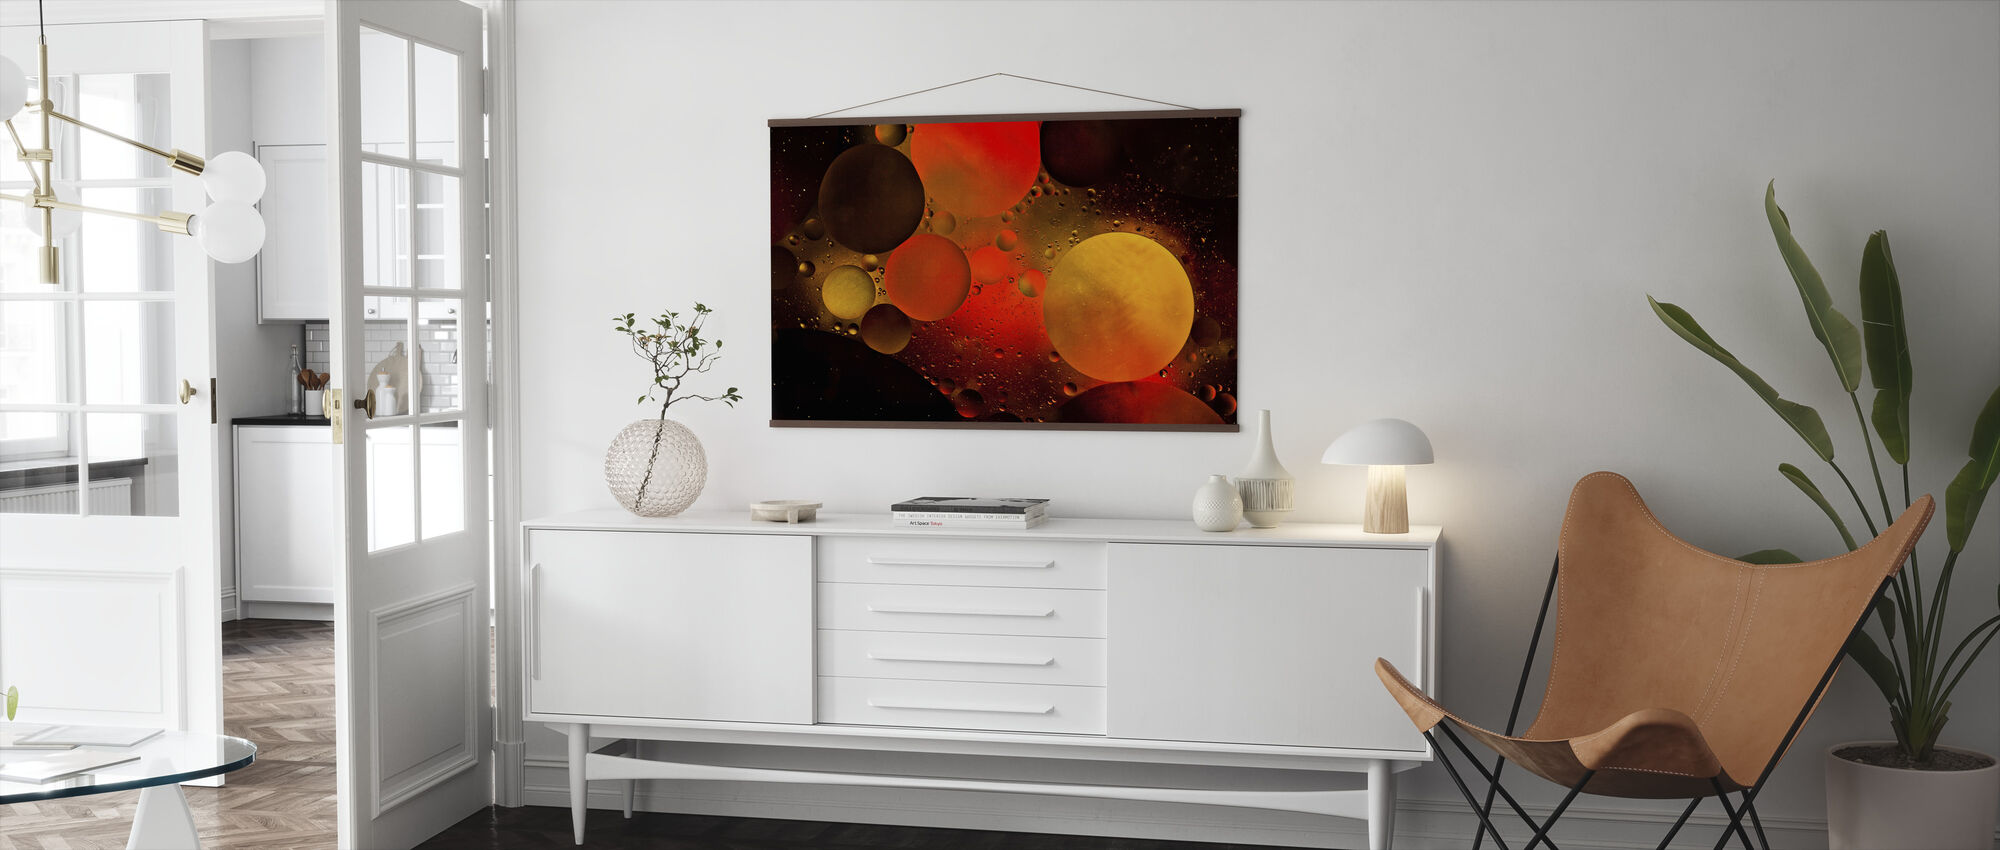 Astronomical - Poster - Living Room